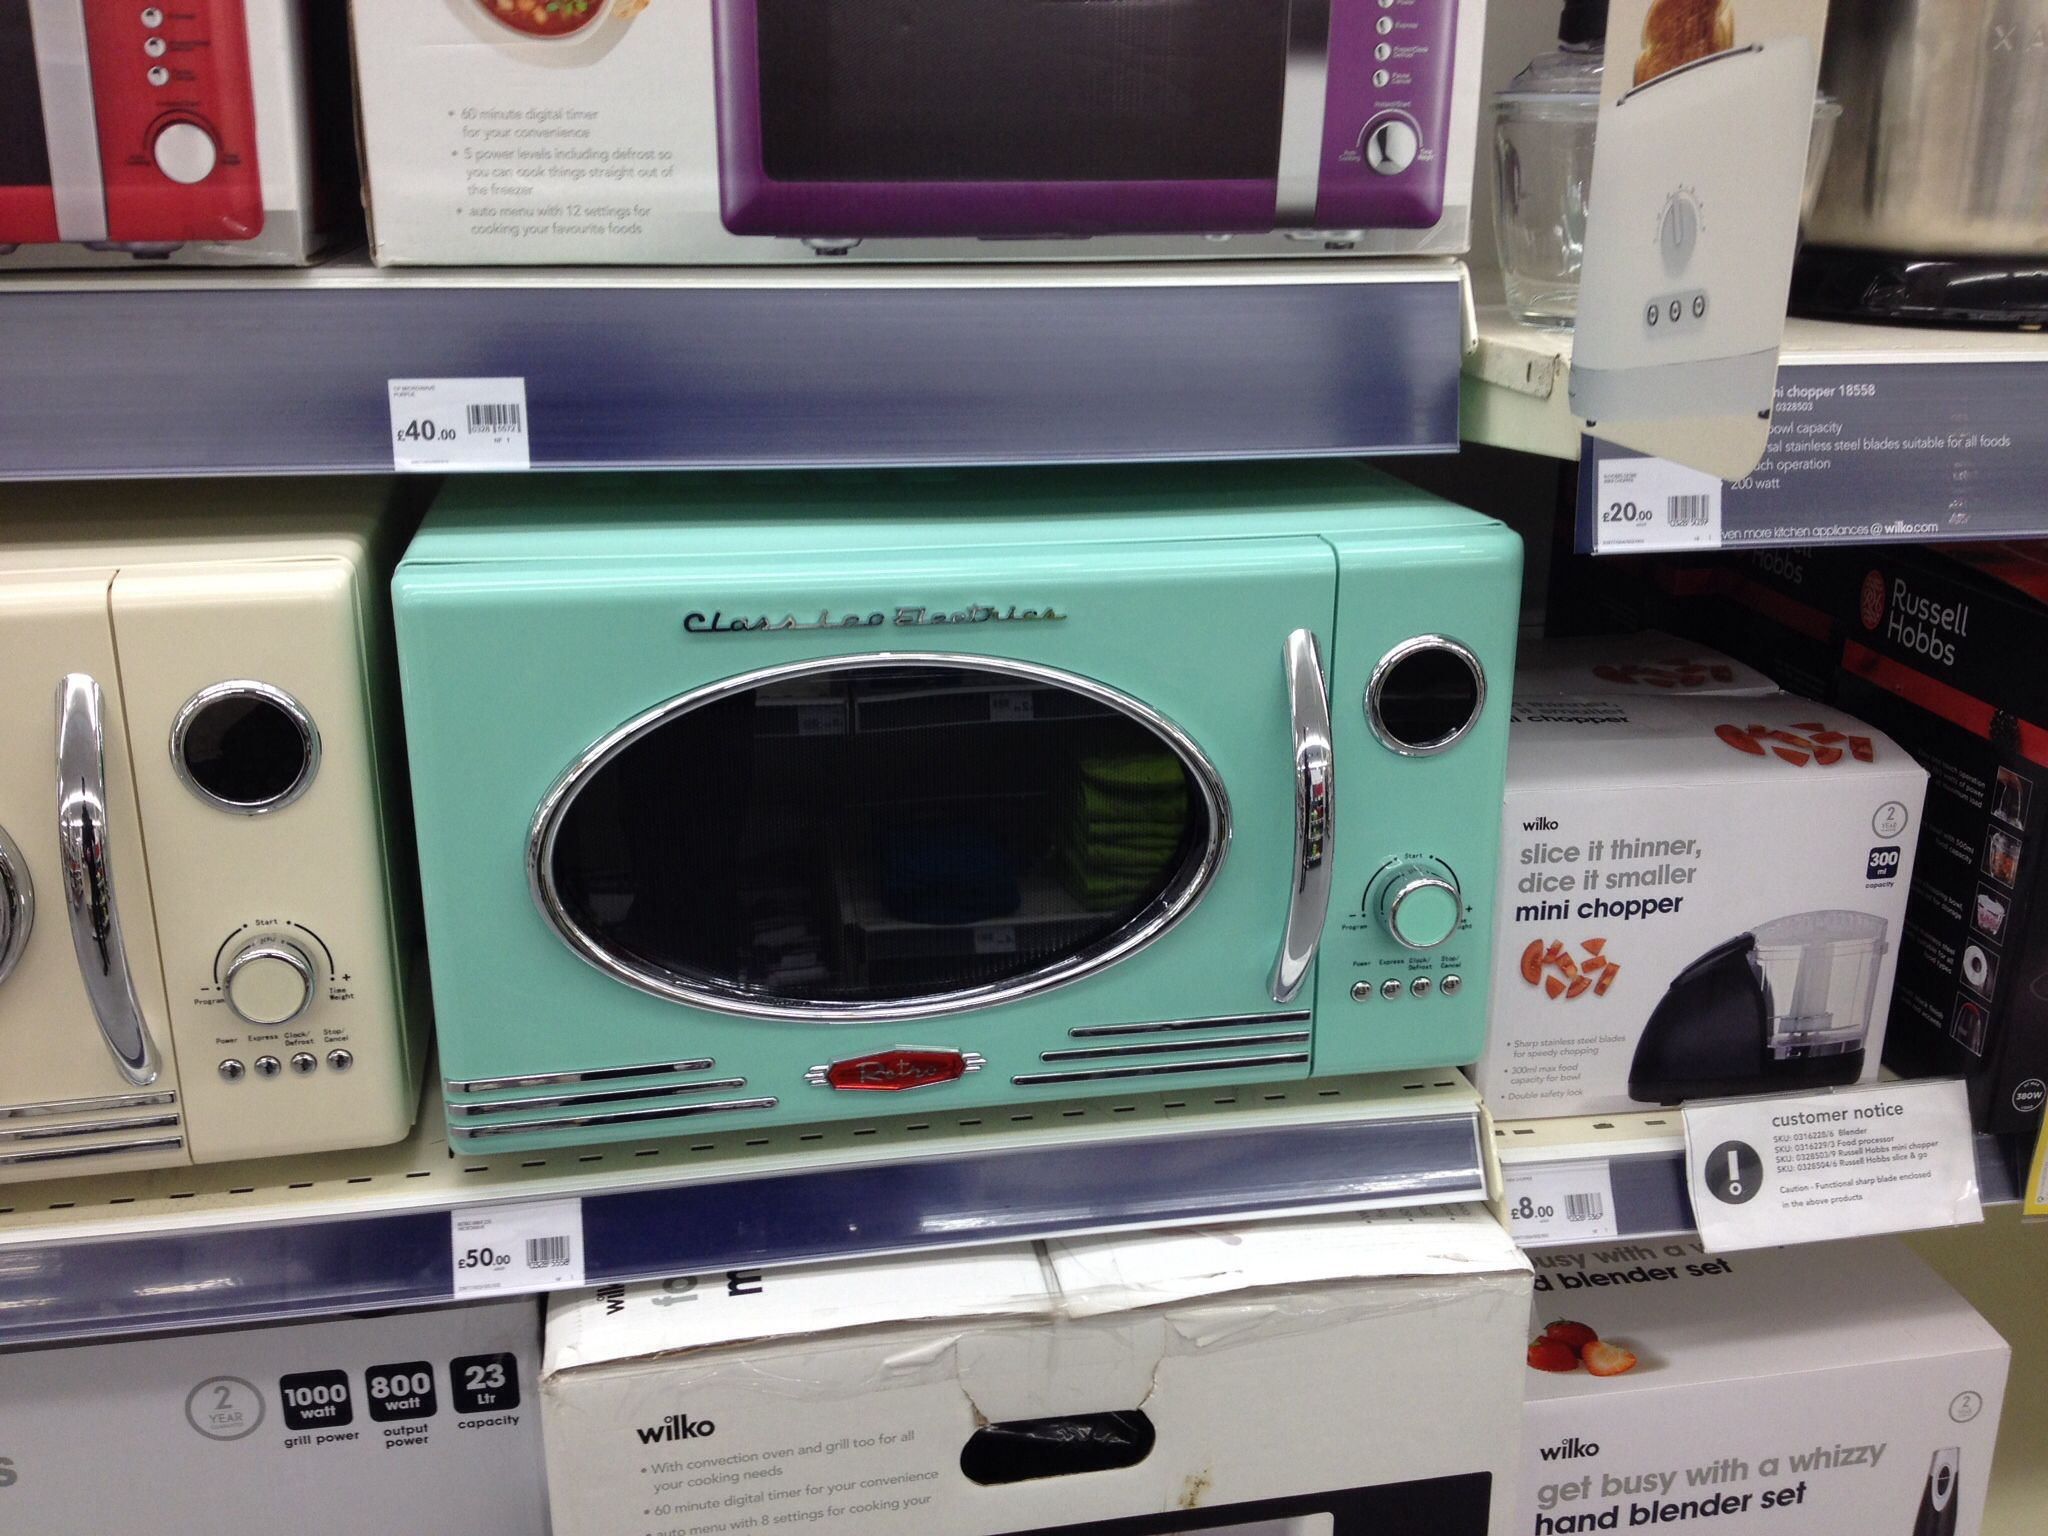 Retro microwave from wilco £50 | Home Sweet Home | Pinterest ...